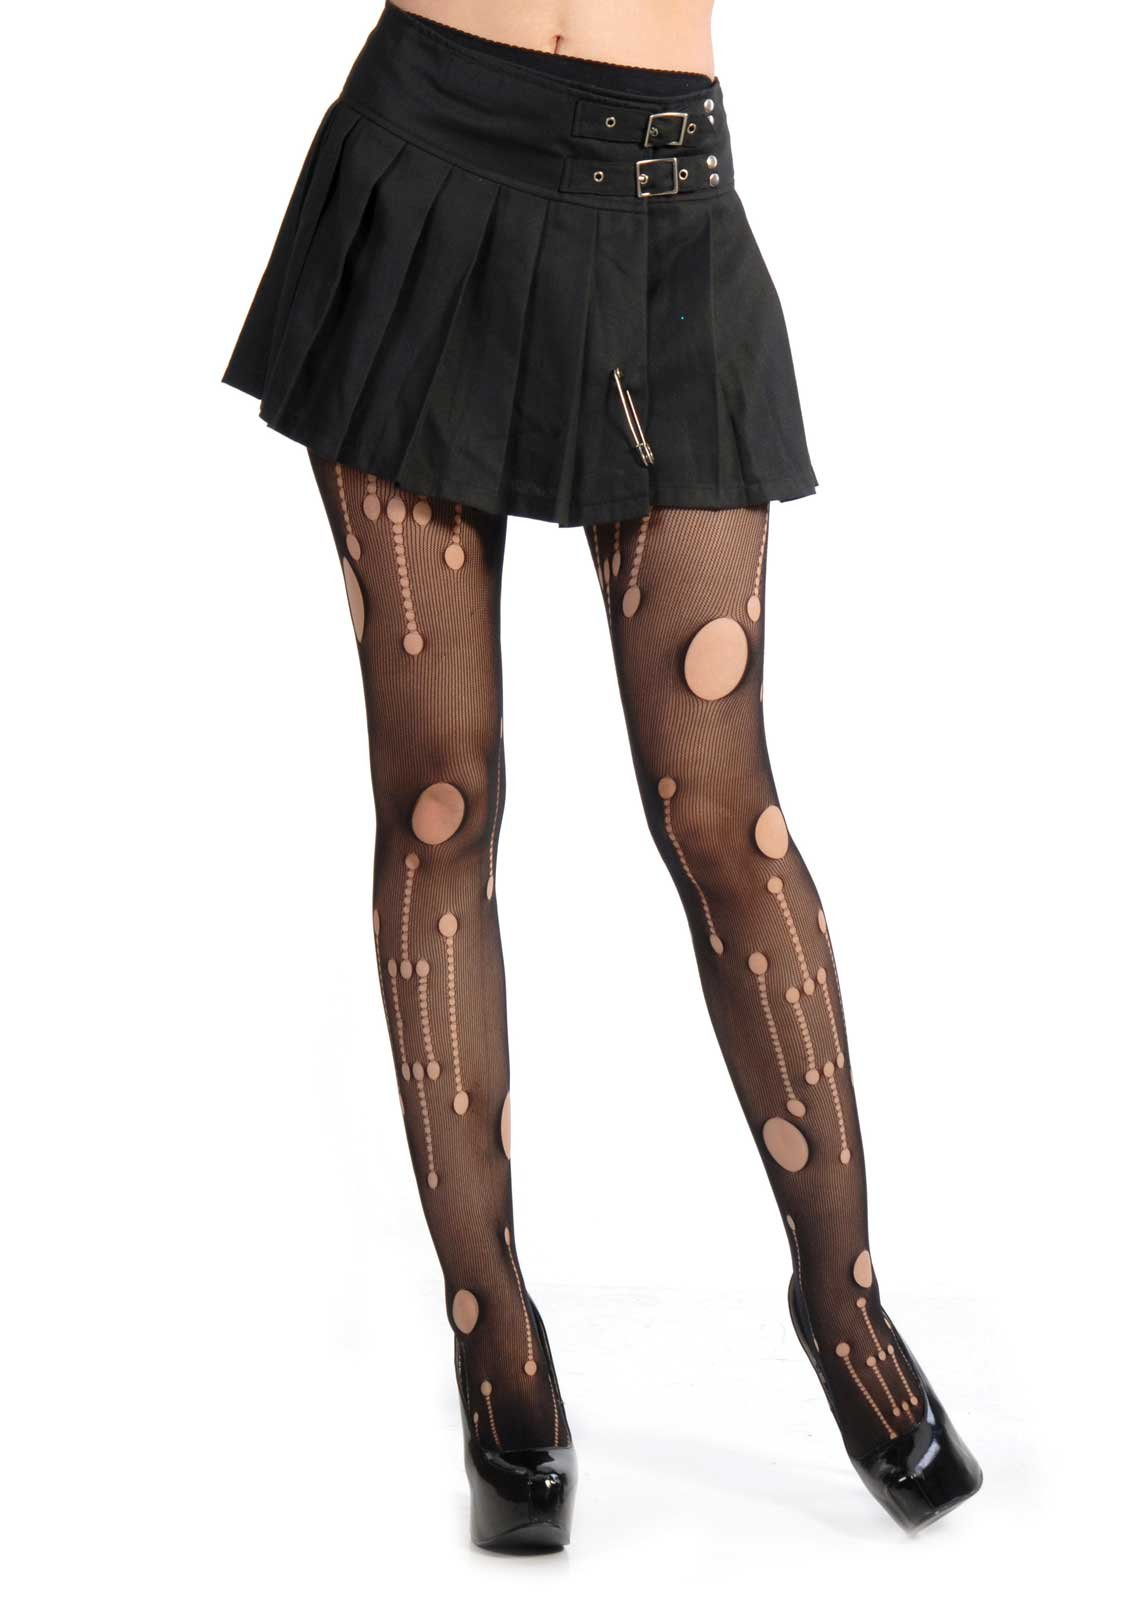 Cyber Adult Tights